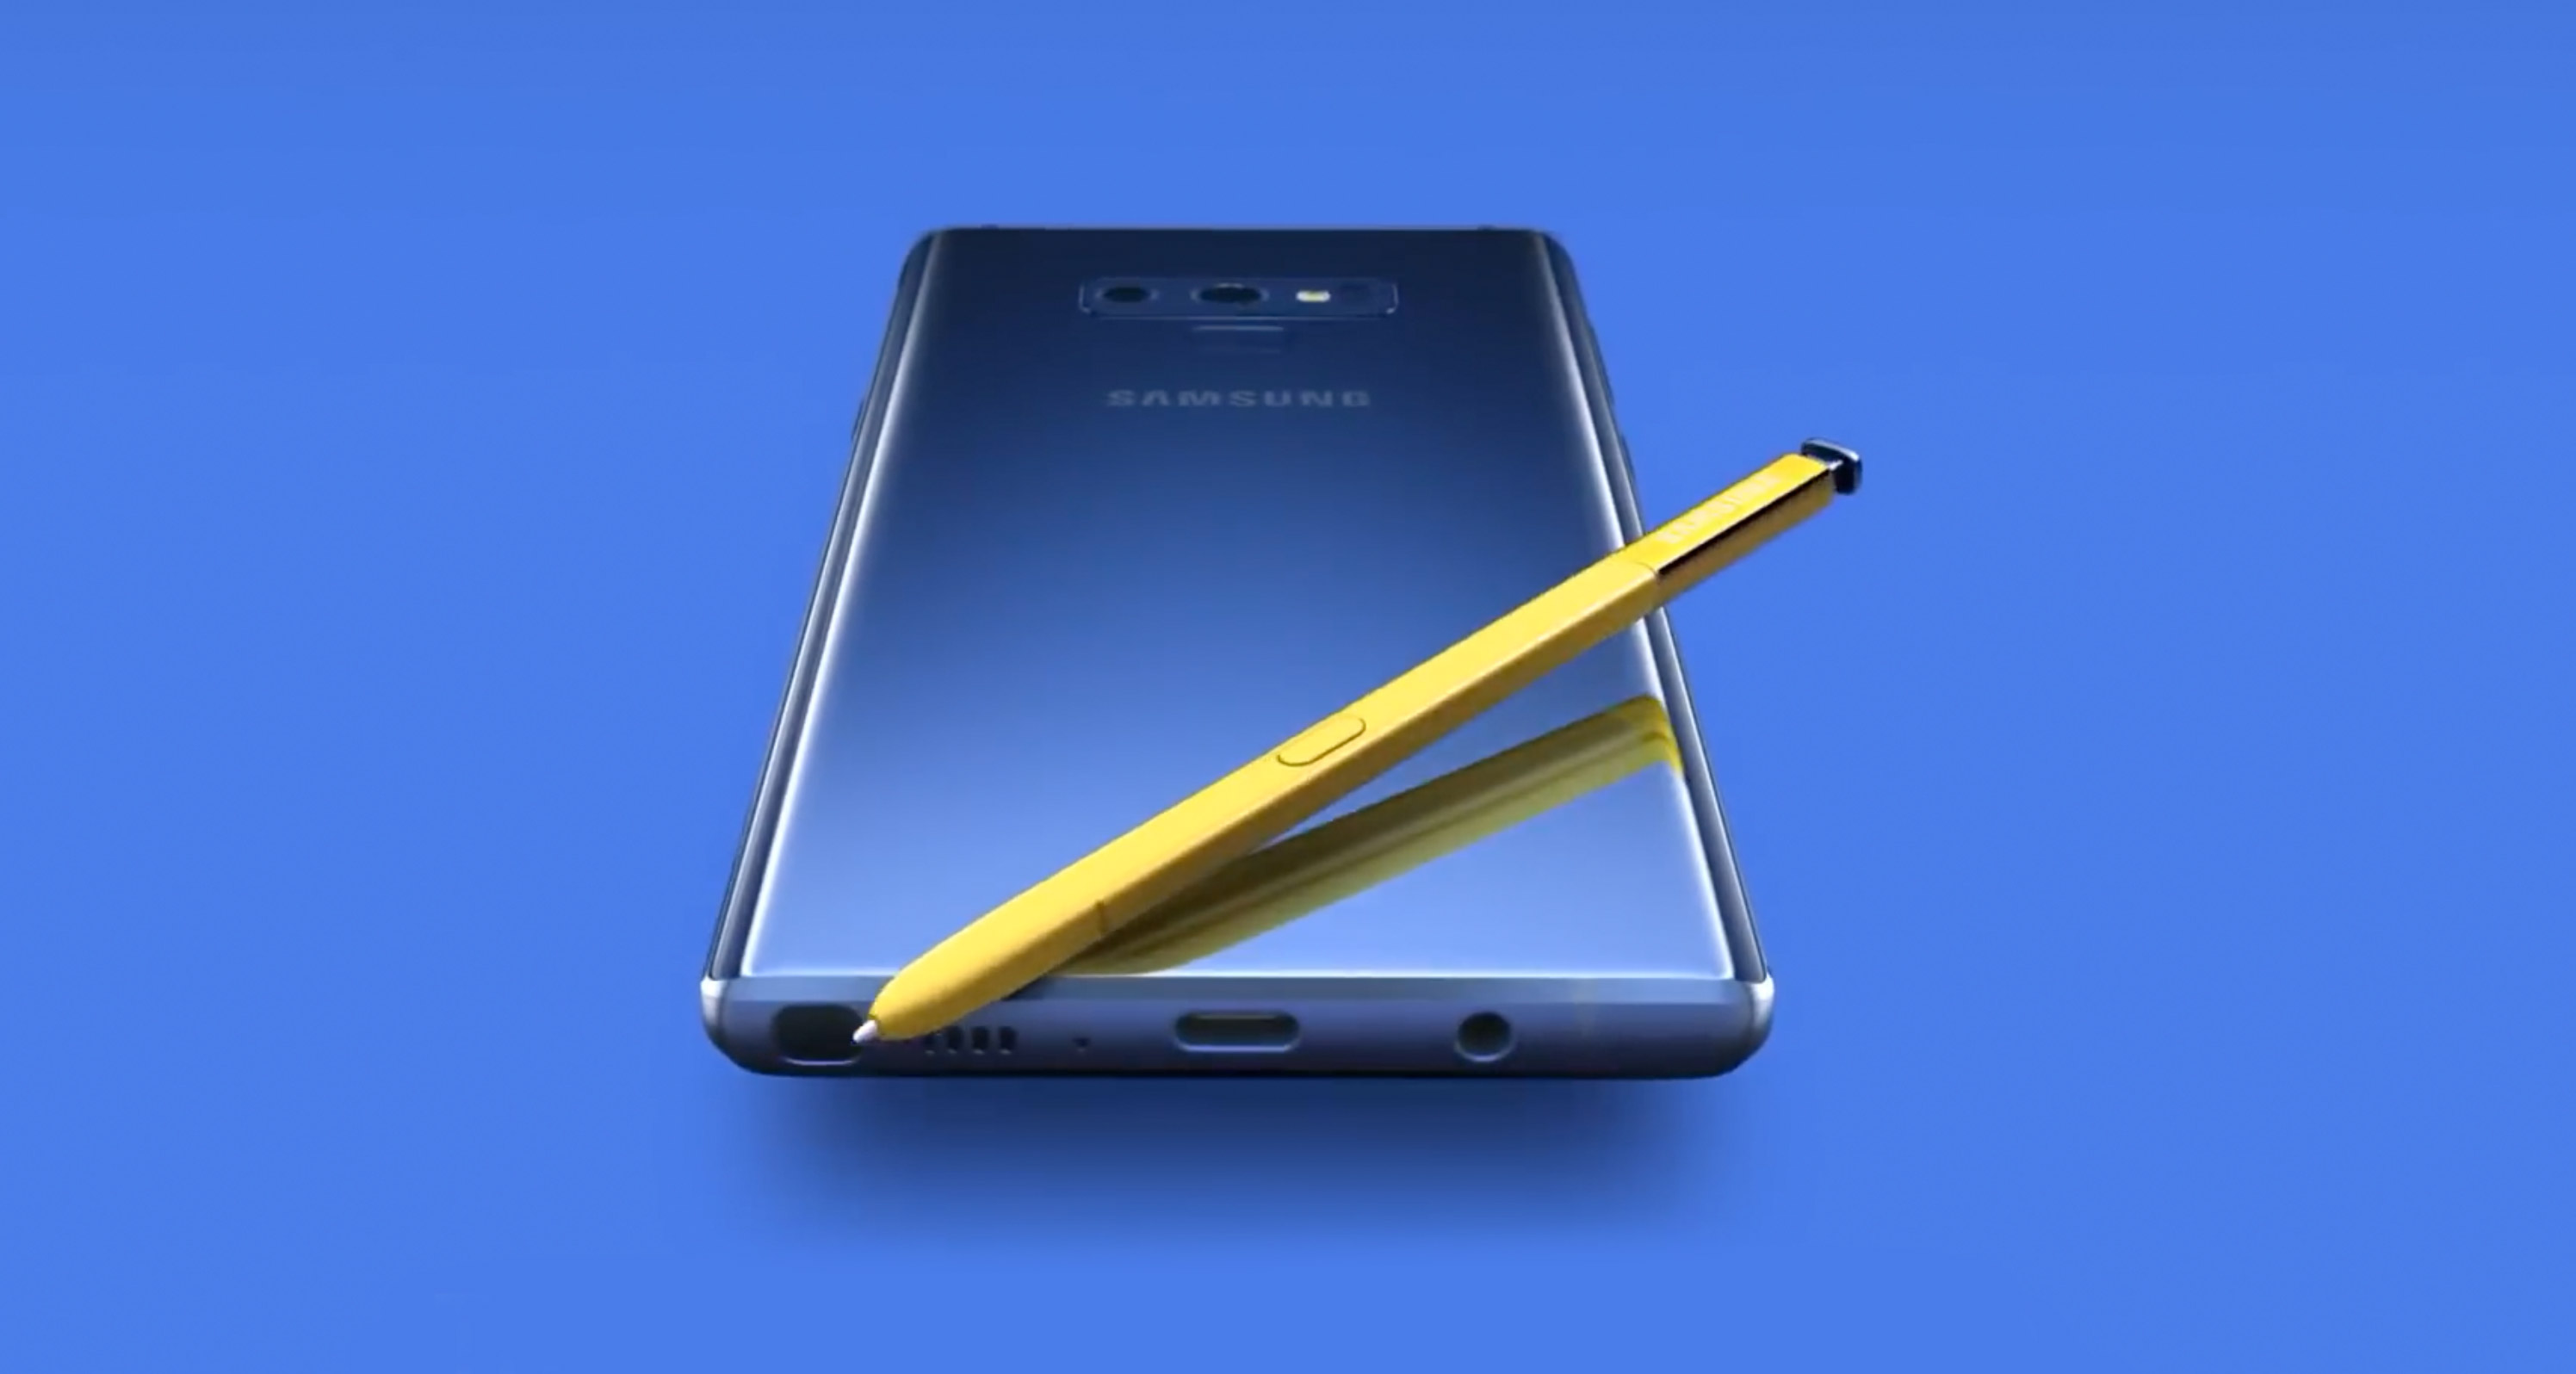 Samsung Galaxy Note 9 blue s pen